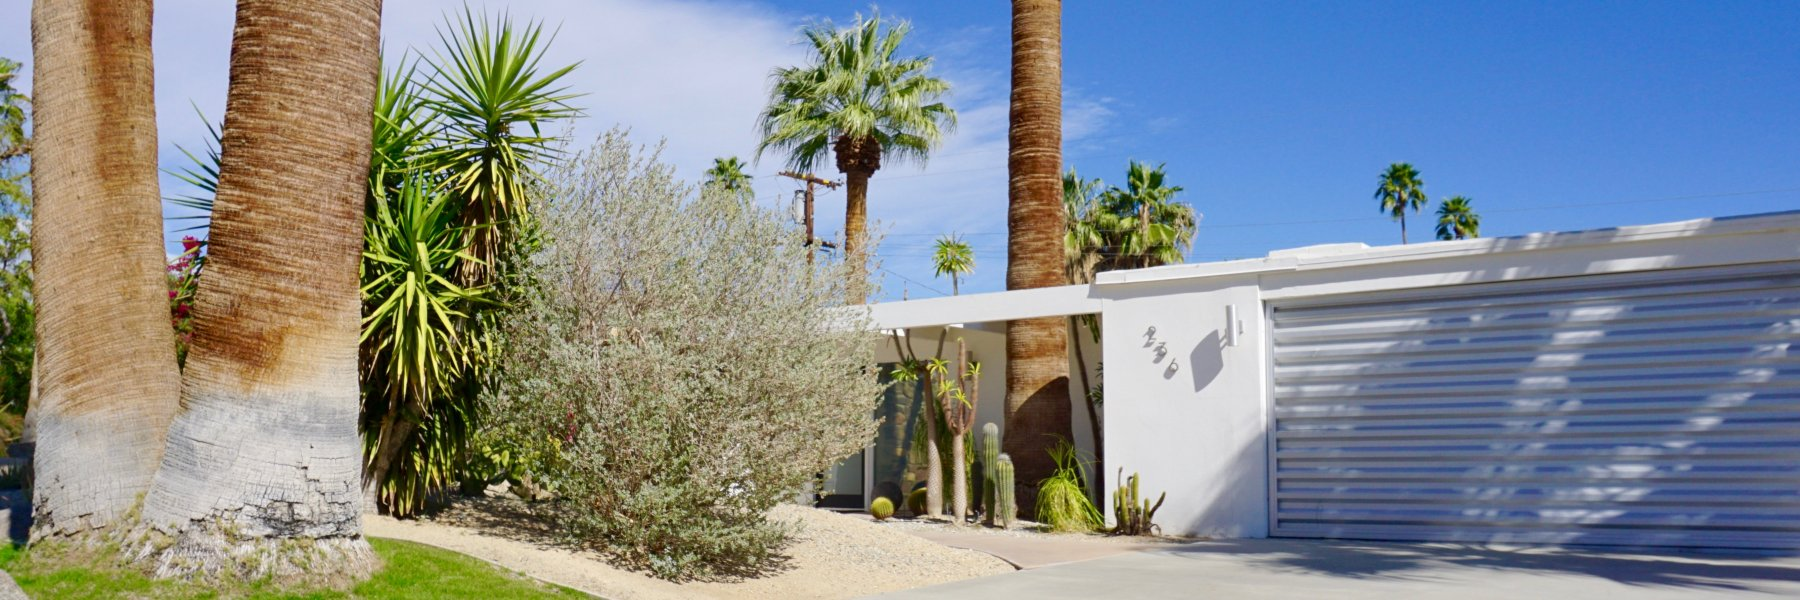 Sunrise Park is a community of homes in Palm Springs California